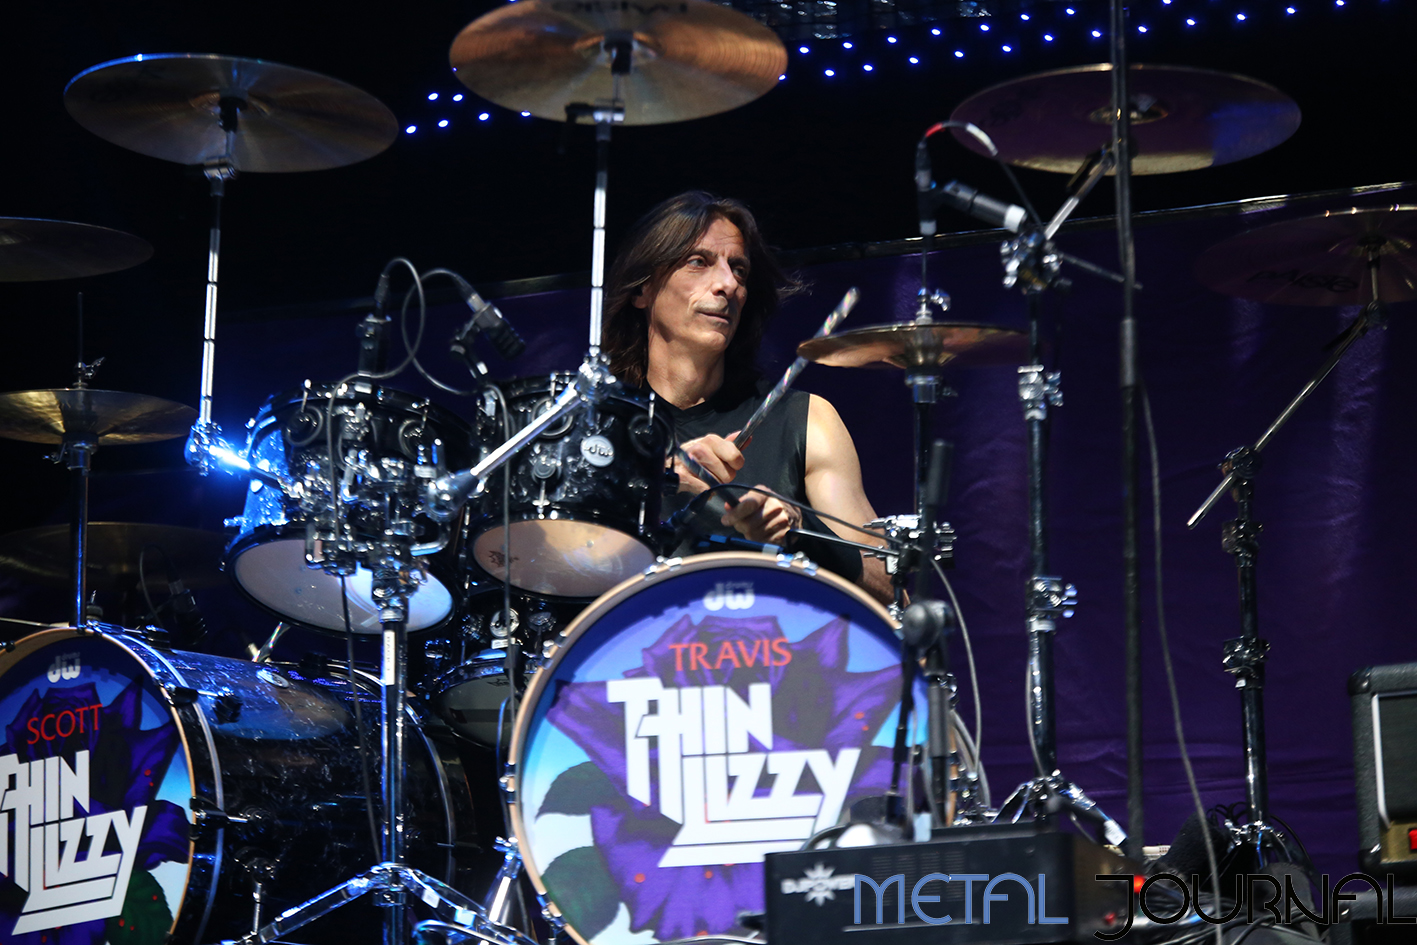 thin lizzy - leyendas del rock 2019 metal journal pic 9